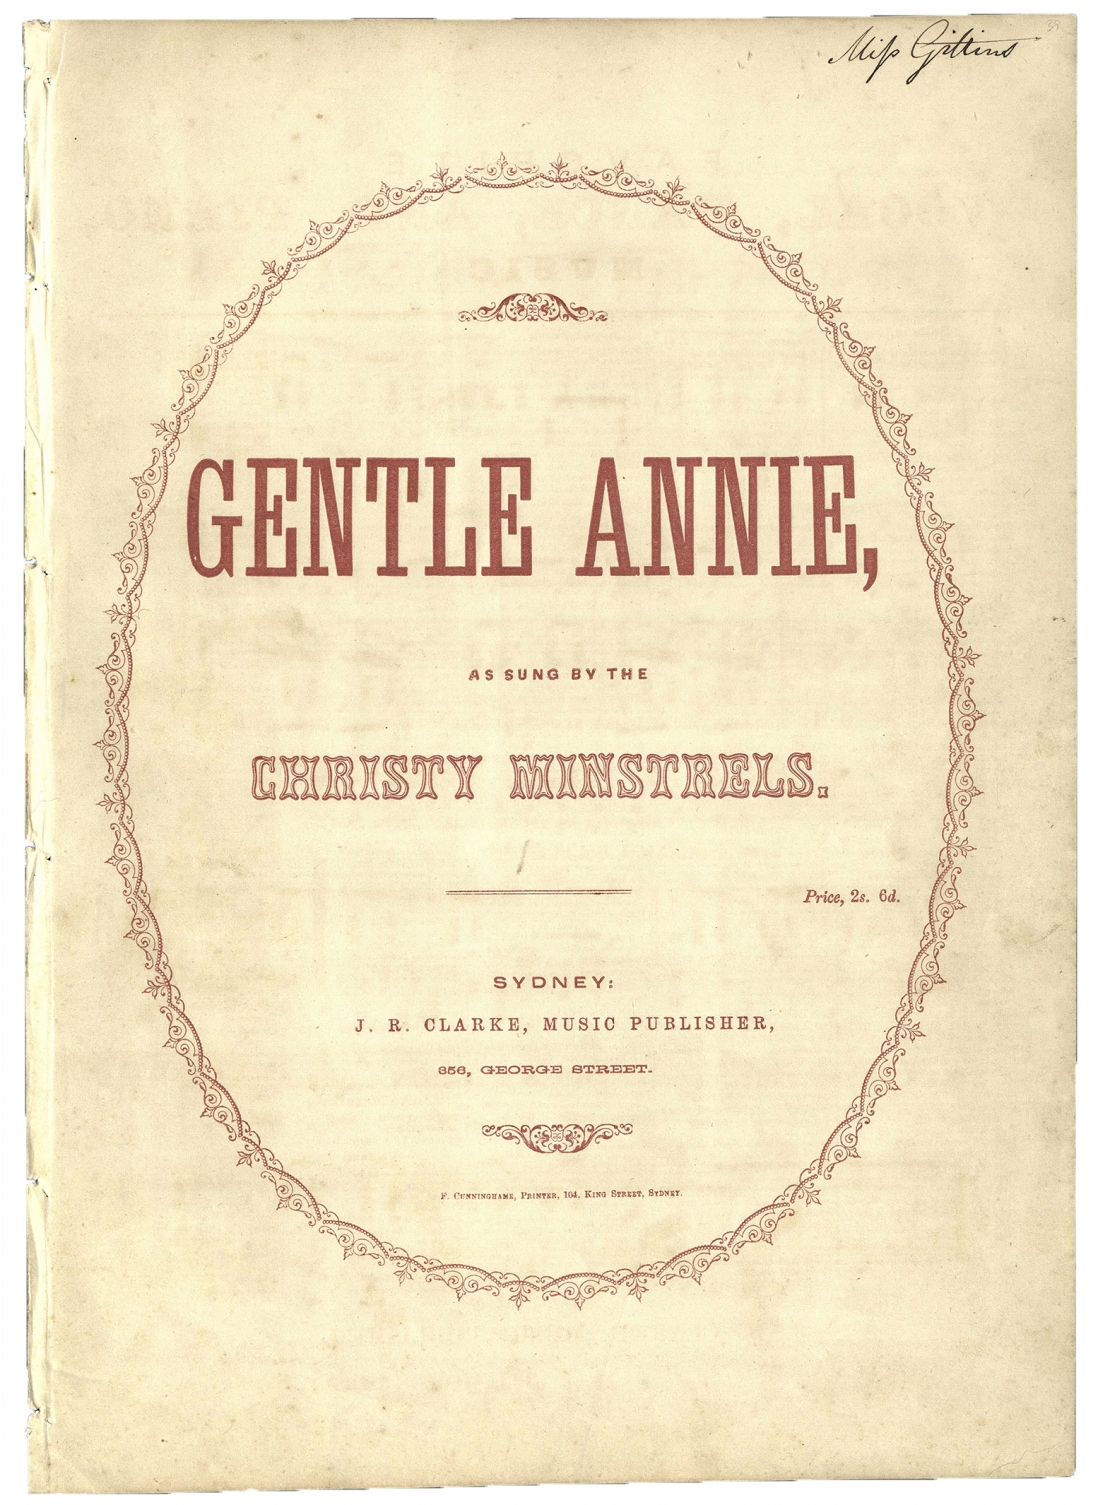 Gentle Annie as sung by the Christy Minstrels